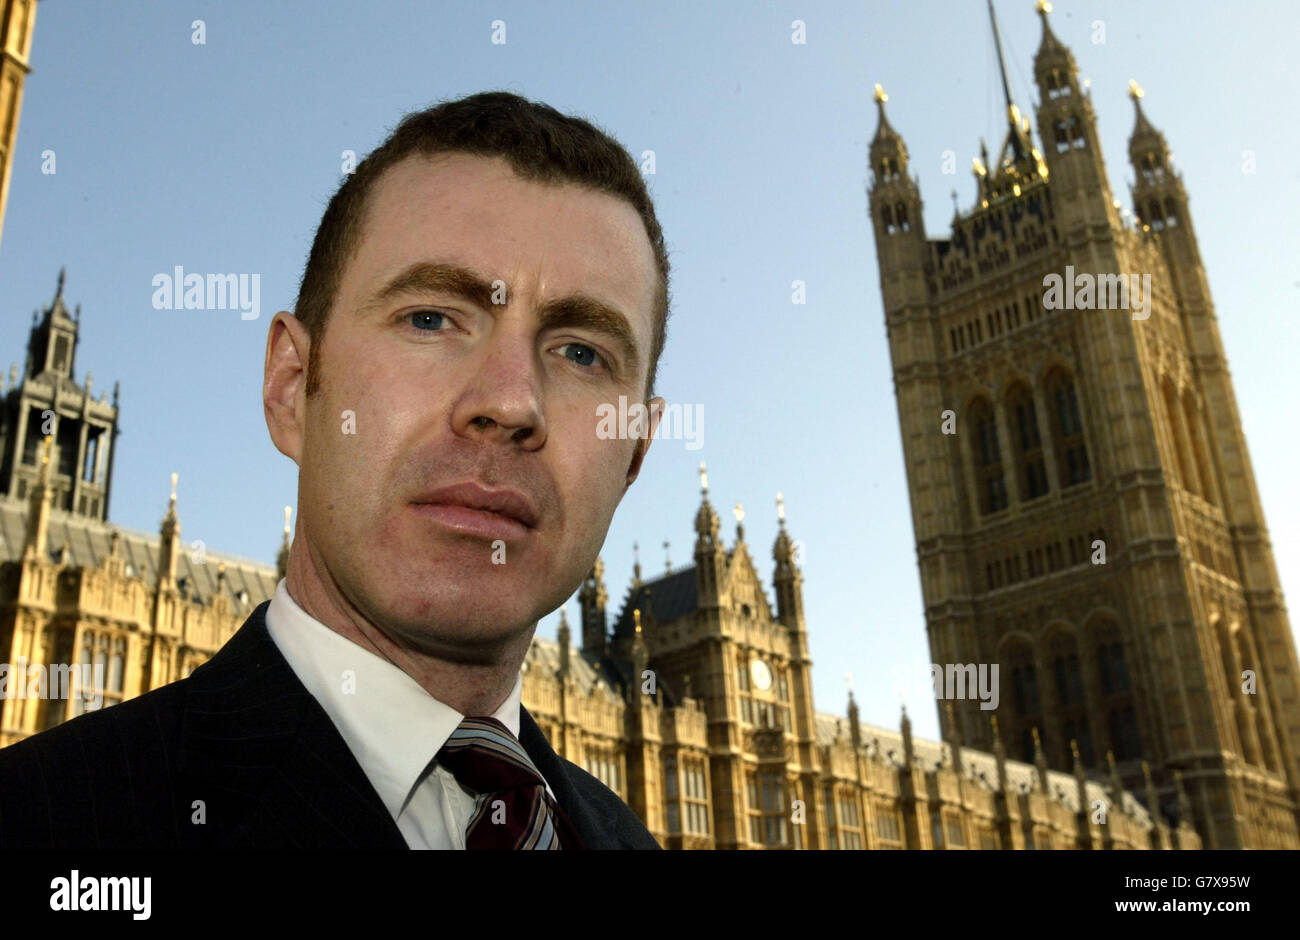 MP ordered from House of Commons - Stock Image